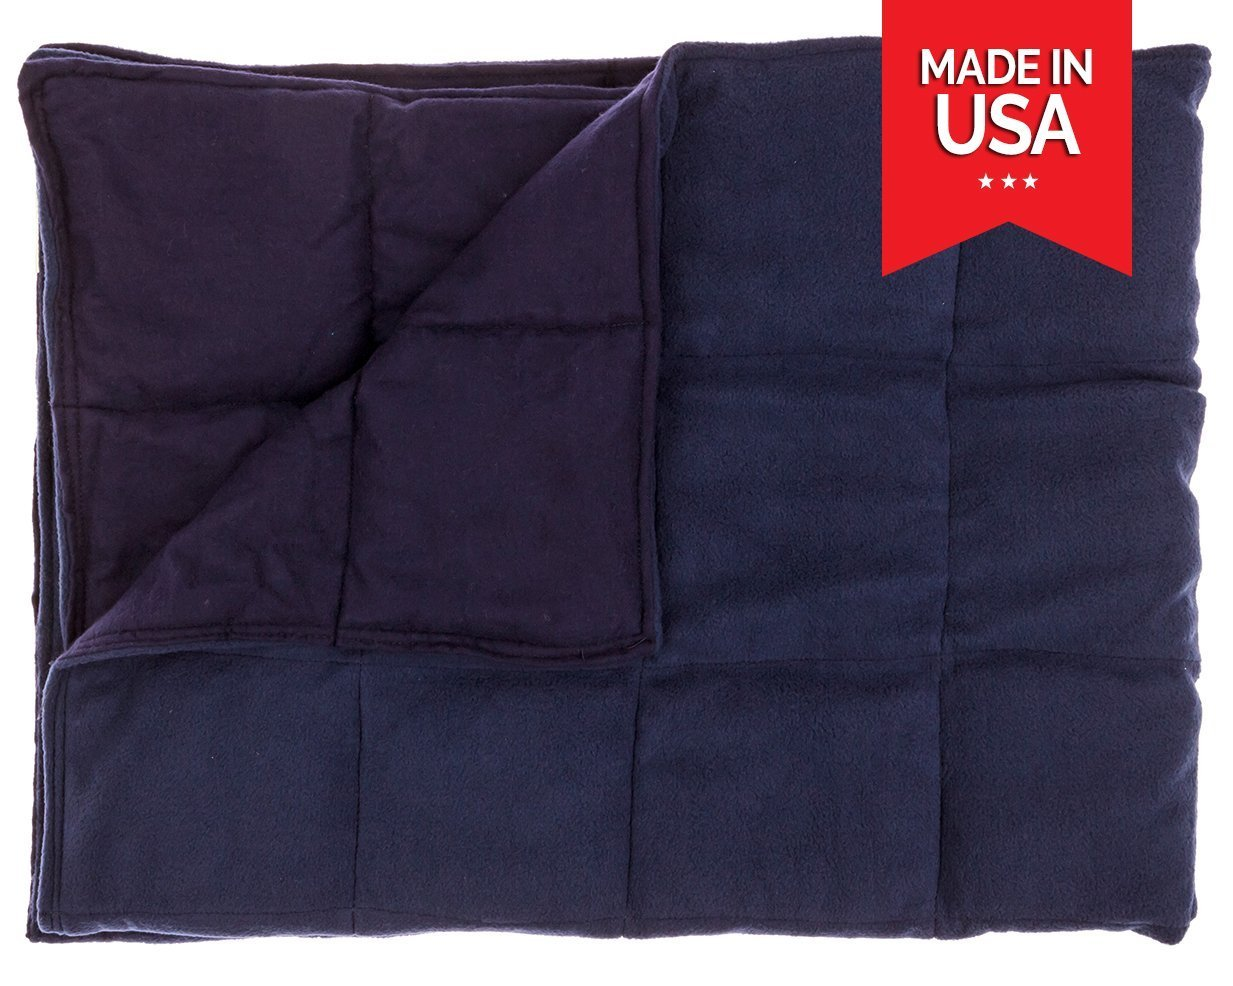 Premium Adult Weighted Blanket By InYard - 15 lbs - Navy Blue - Suitable for a person Between 90-150 lb